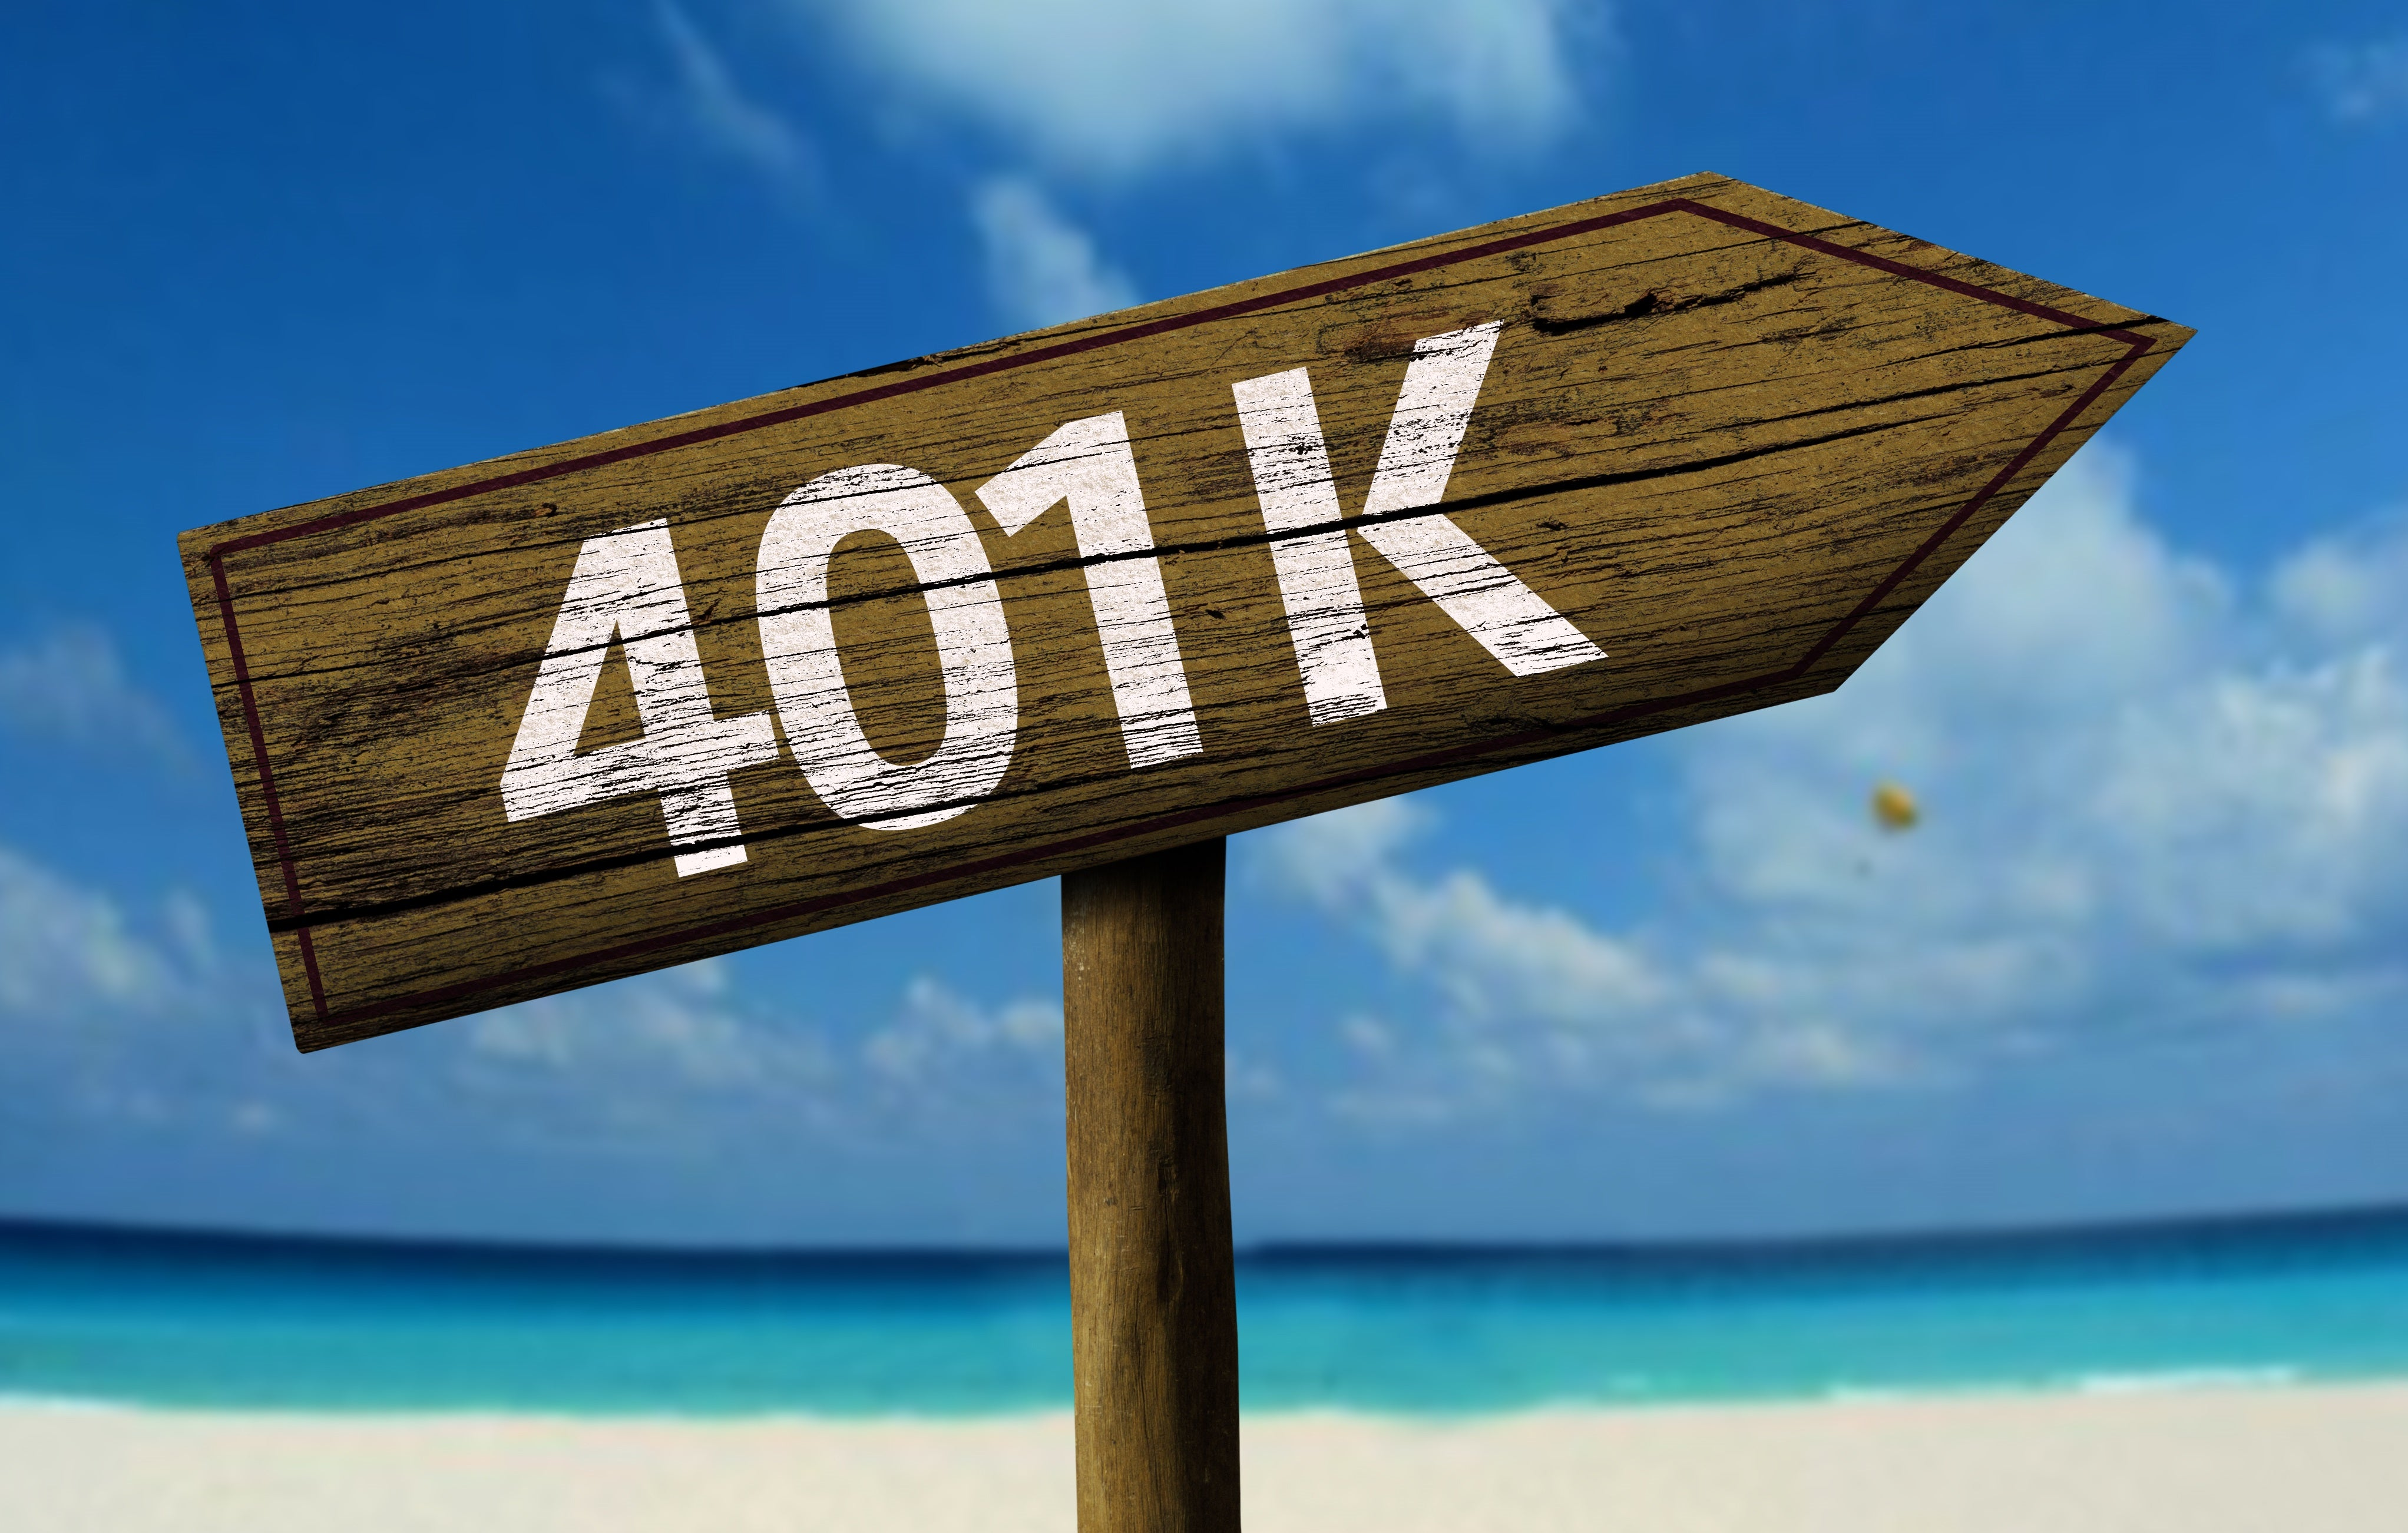 A Record Number of 401(k) Holders Are Now Millionaires: Here's How To Join The Ranks | The Motley Fool